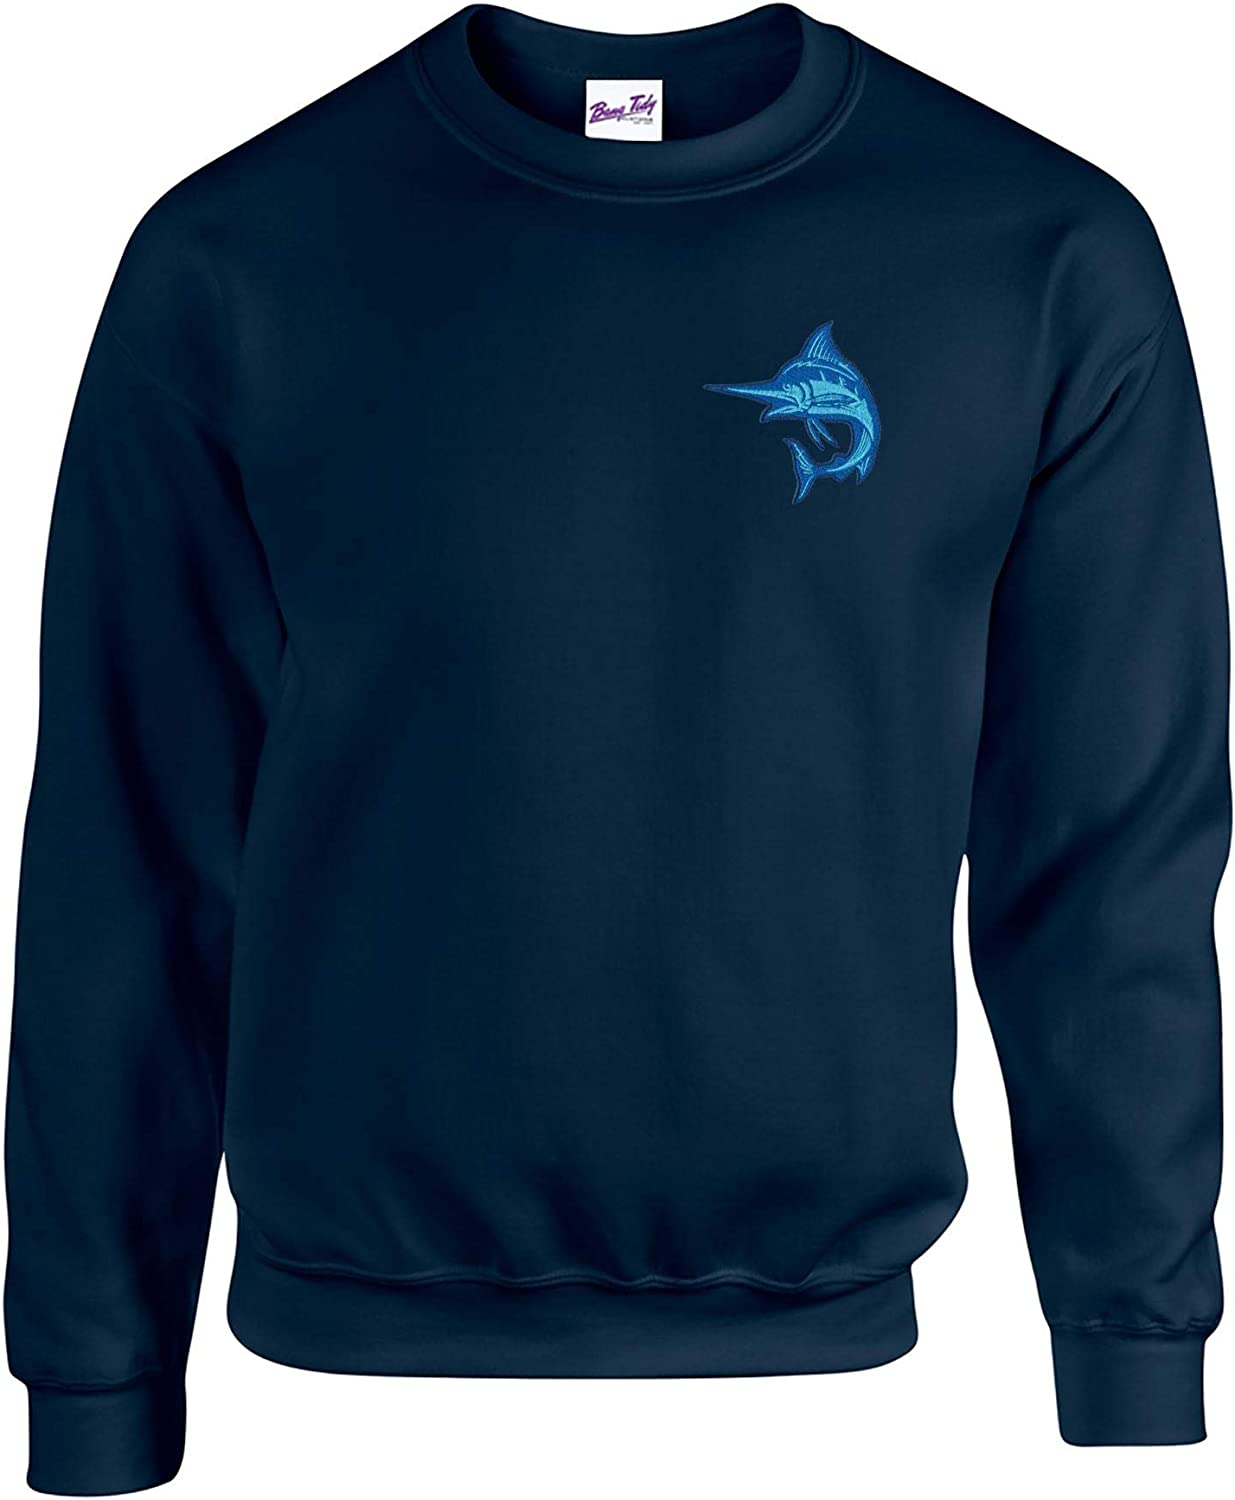 Bang Tidy Clothing Marlin Fishing Sweatshirts Fisherman Gifts Embroidered Fish Sweatshirt Jumper